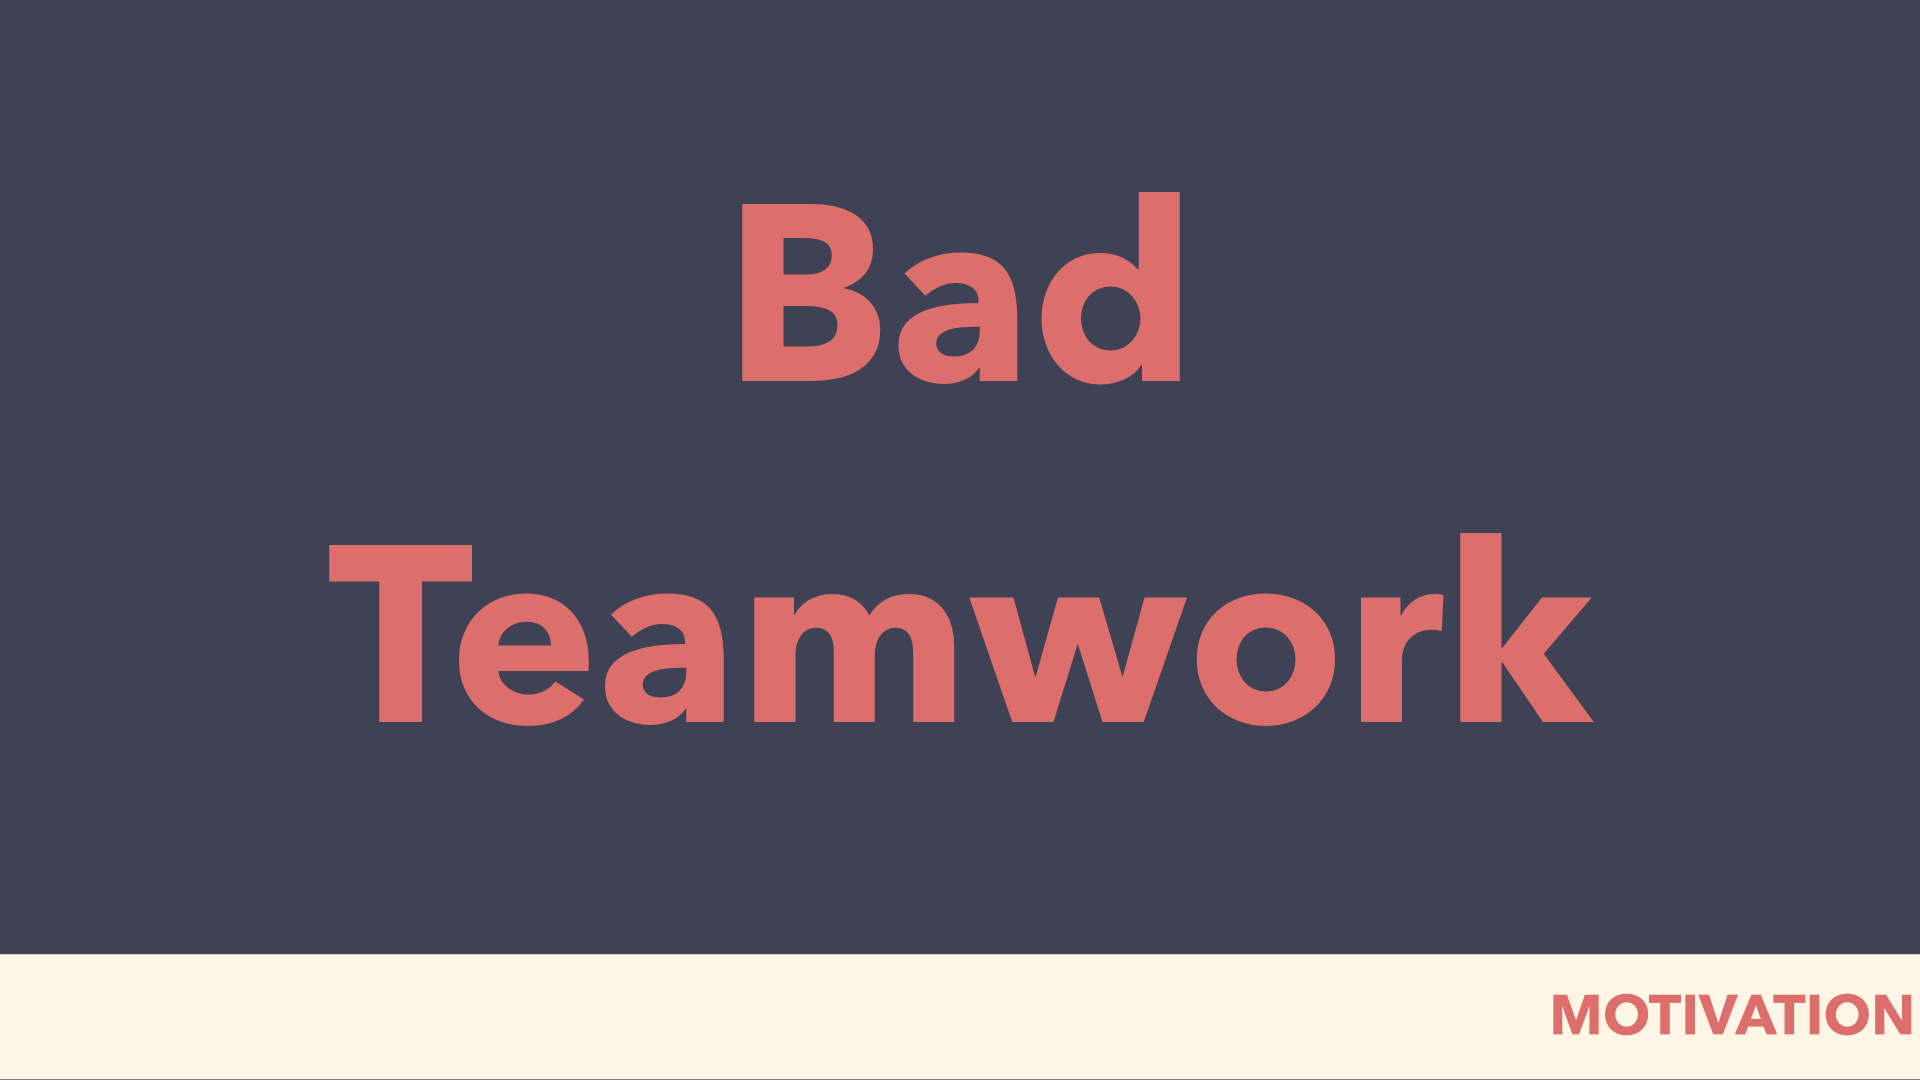 bad teamwork